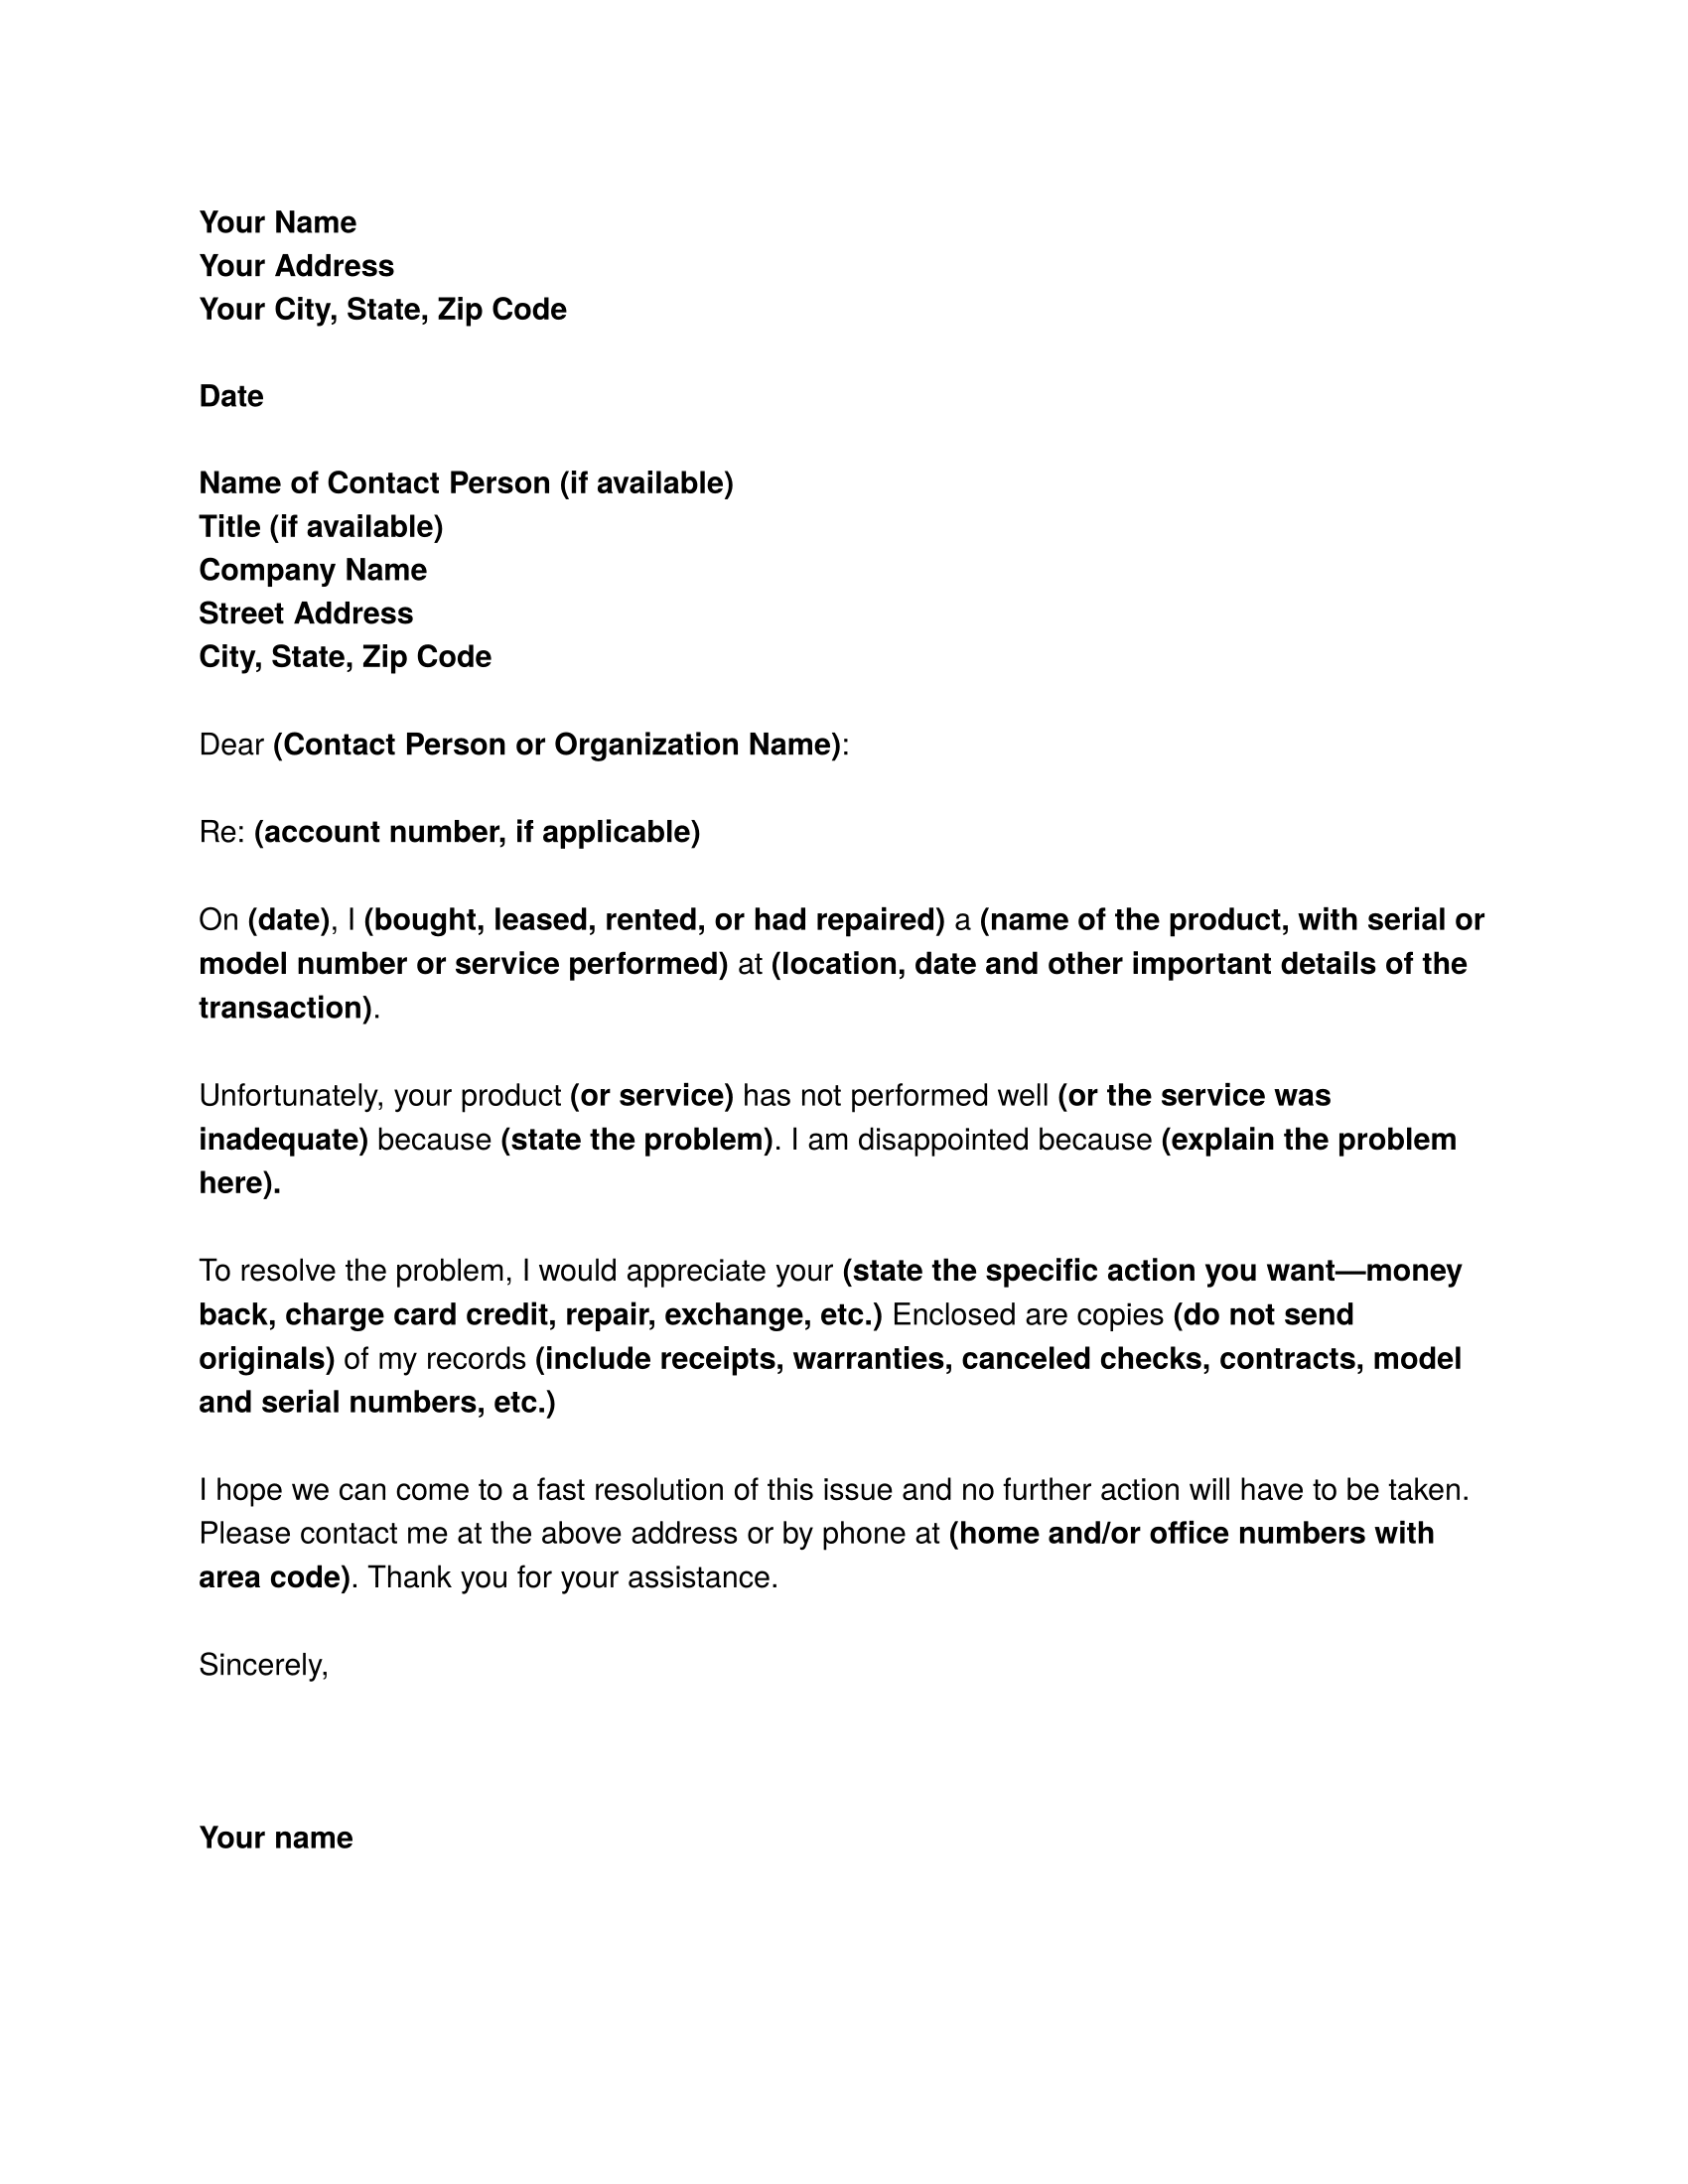 Letter of complaint for product or service free download letter of complaint for product or service free download altavistaventures Image collections